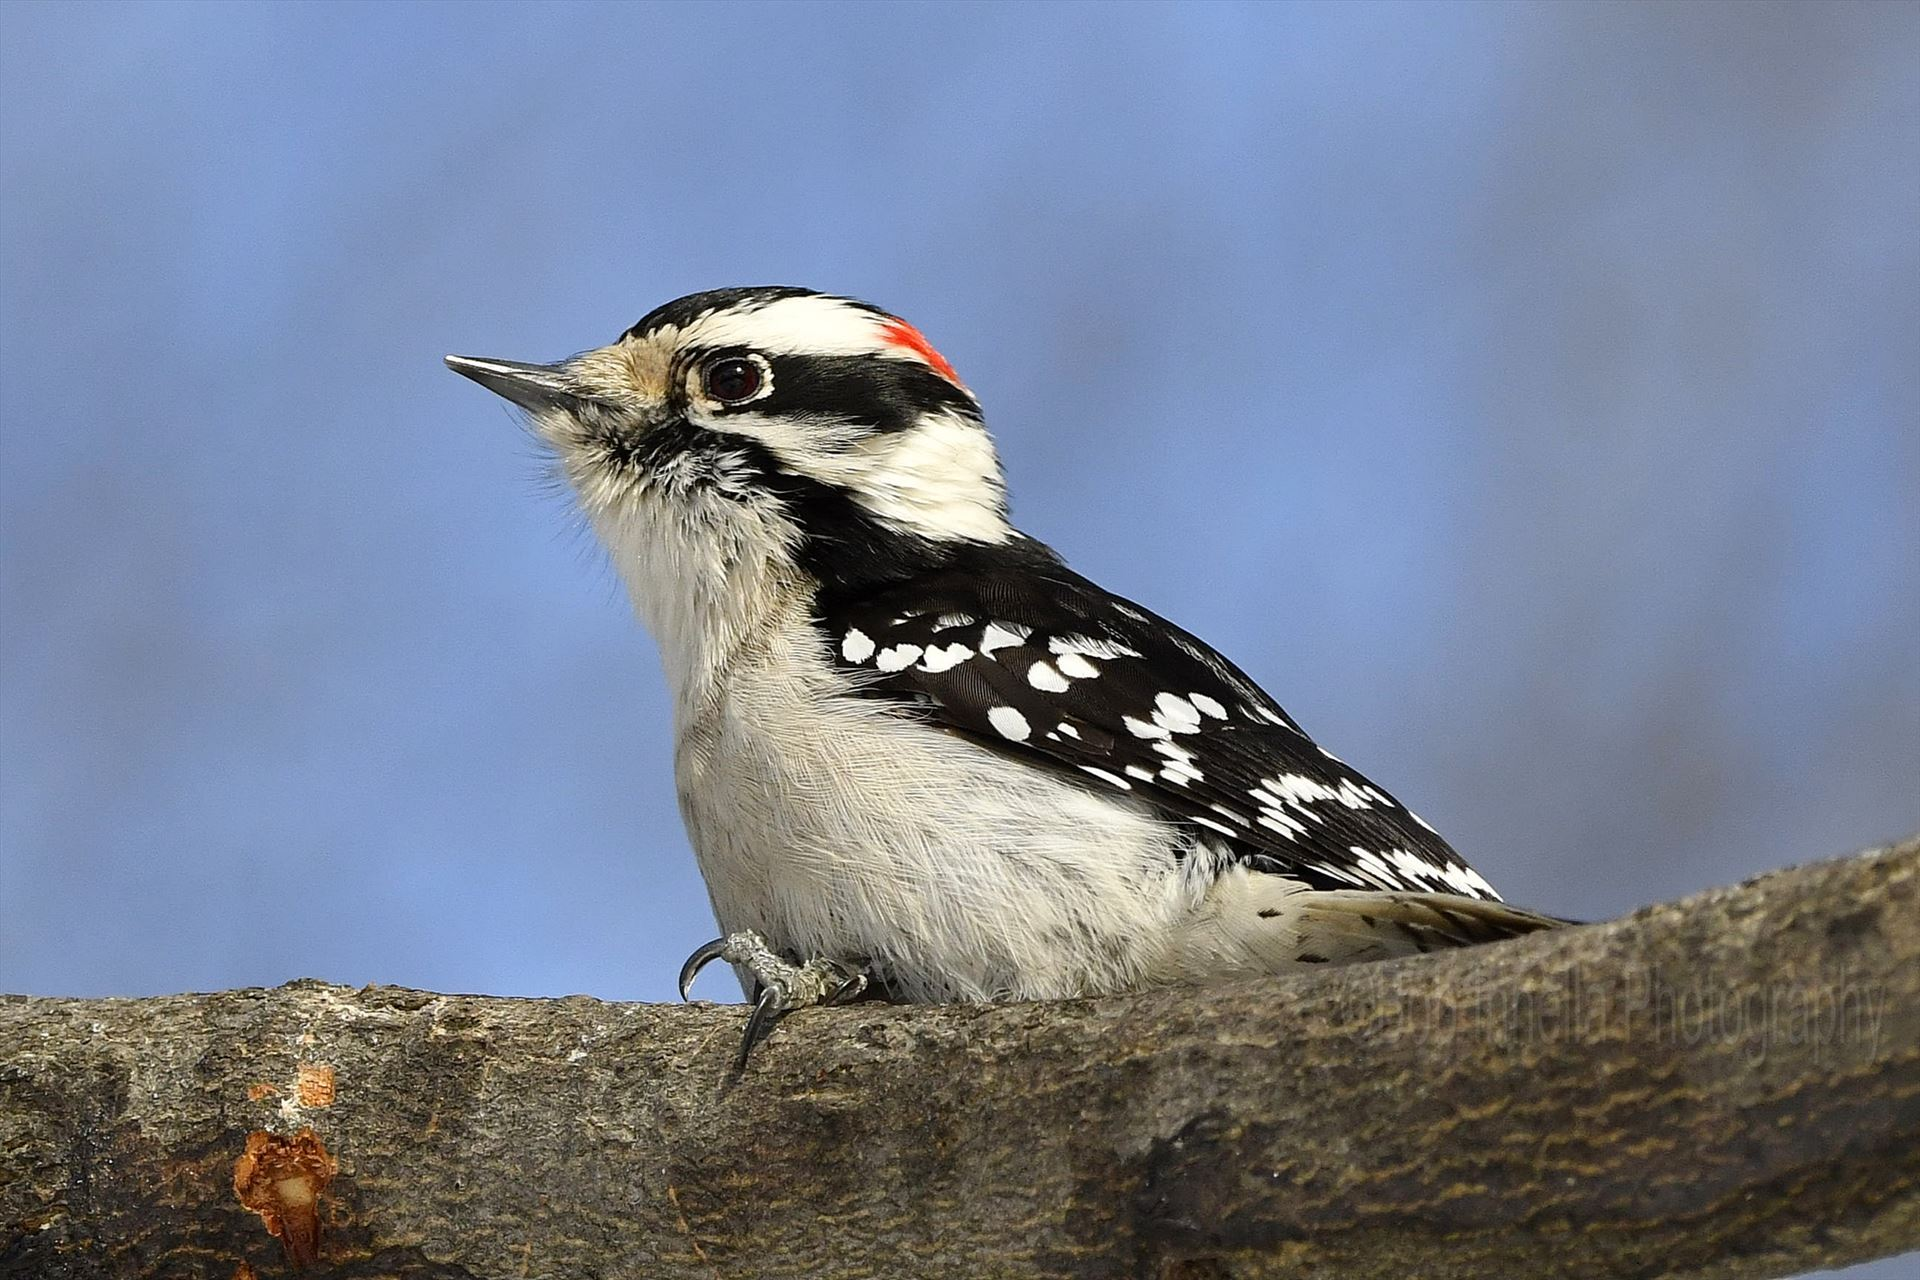 Male Downy Woodpecker2 - Male Downy Woodpecker in the Wilds Of Northeast Pa by Buckmaster